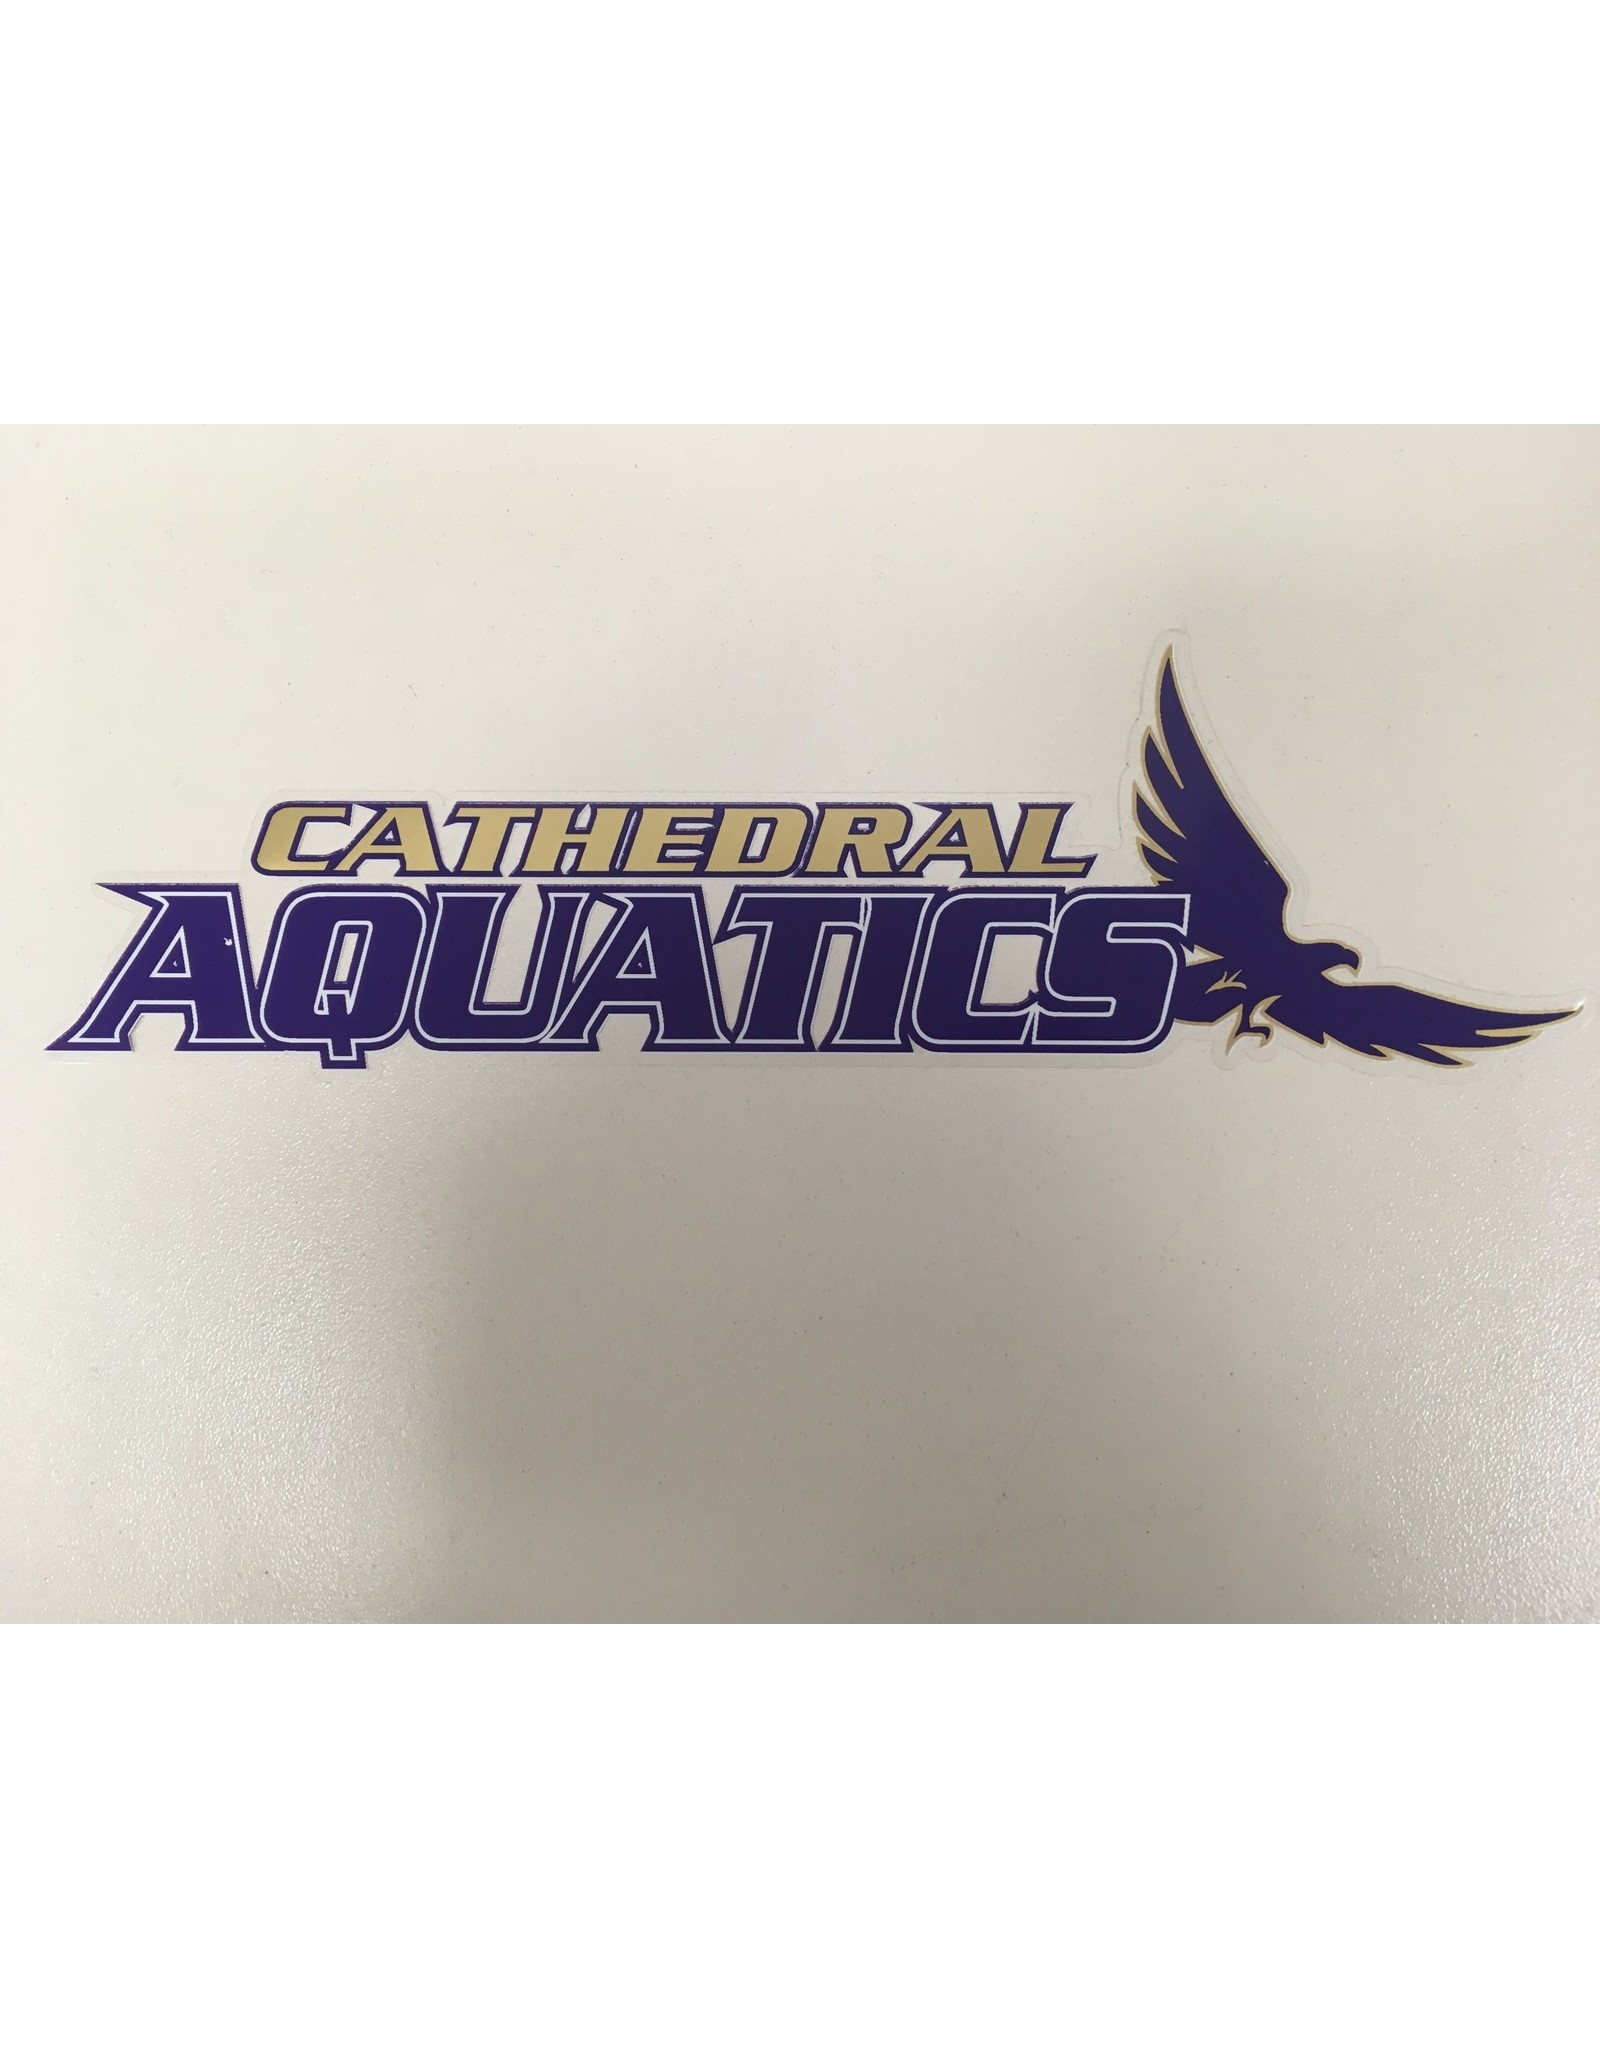 DECAL-CATHEDRAL AQUATICS